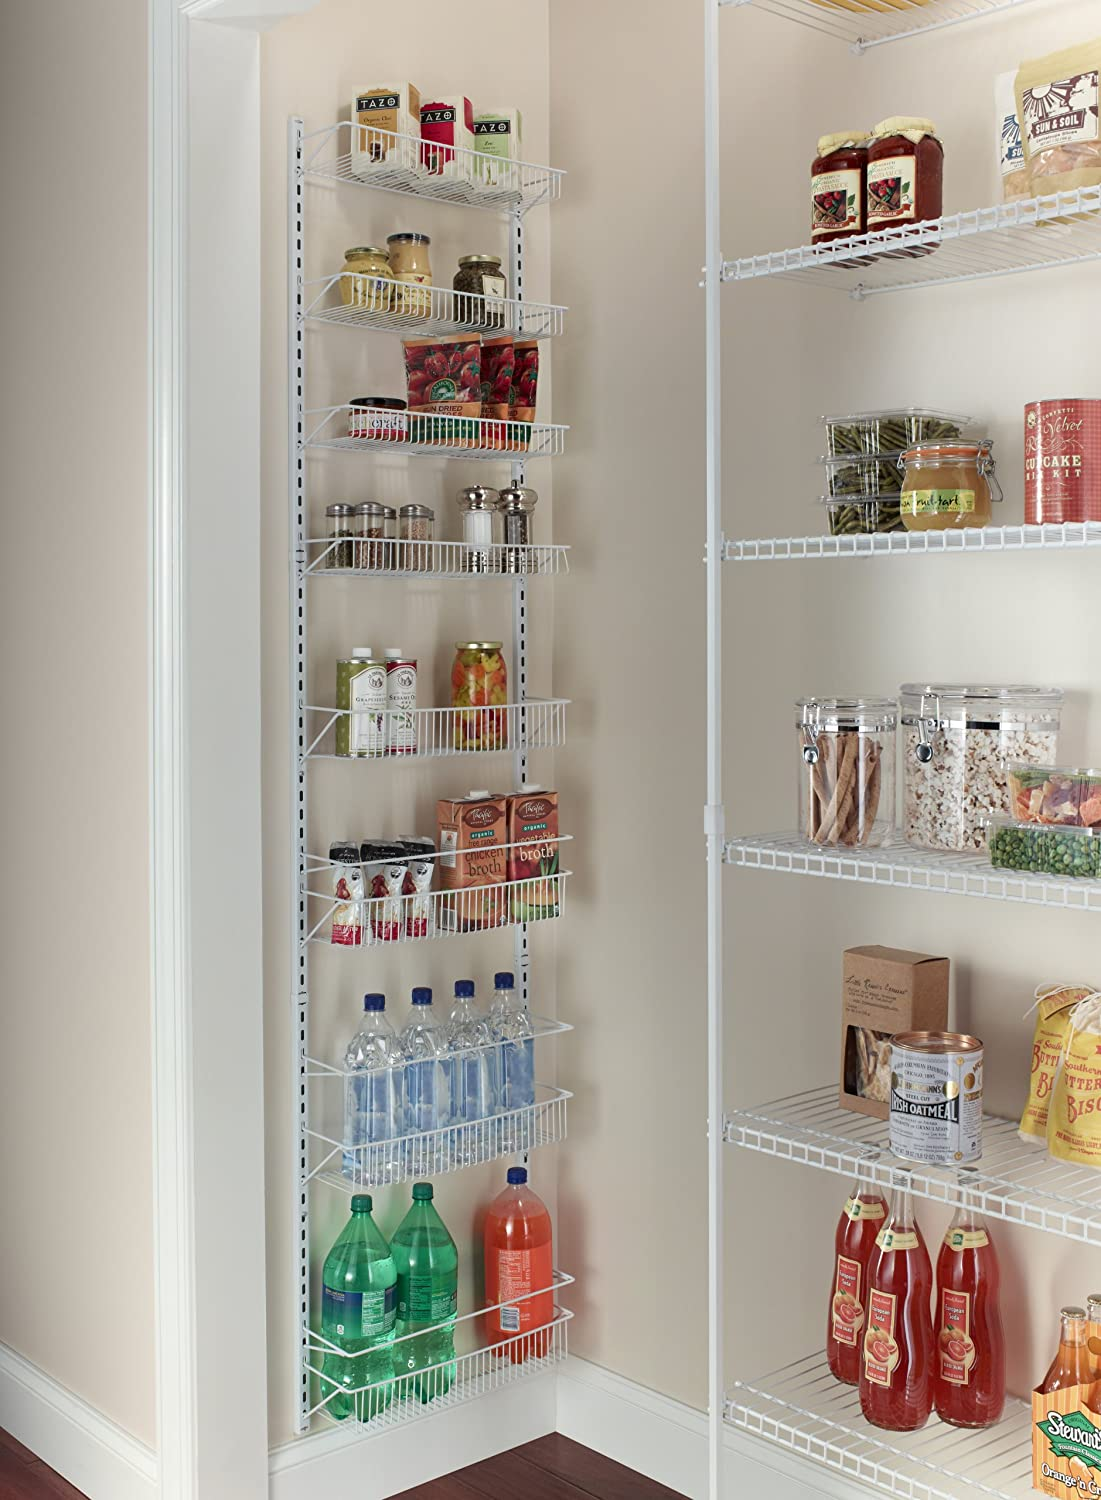 Kitchen Organizer Over The Door Storage Rack Basket Shelf Kitchen Organizer Wall